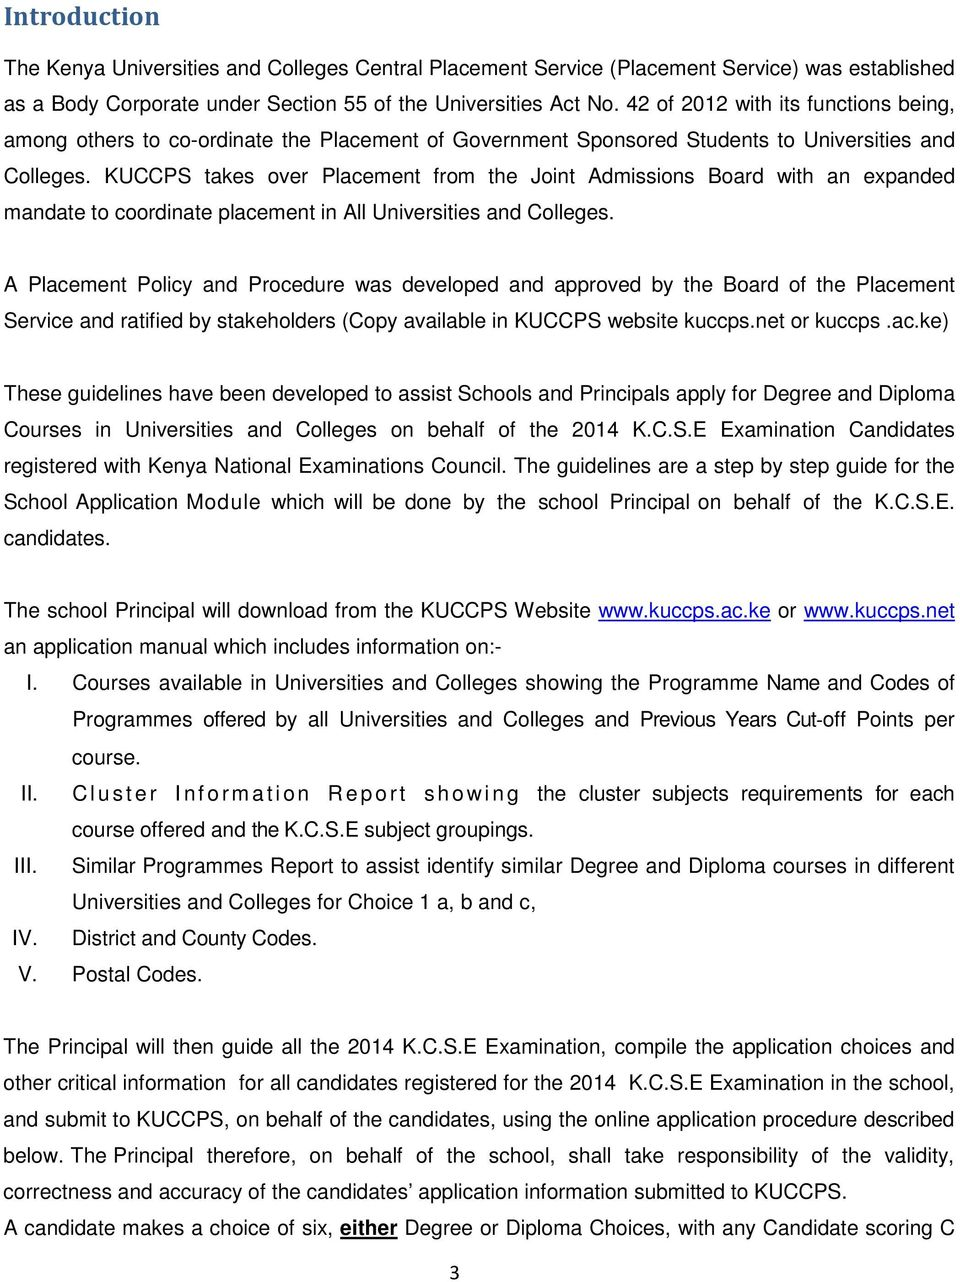 KUCCPS takes over Placement from the Joint Admissions Board with an  expanded mandate to coordinate placement